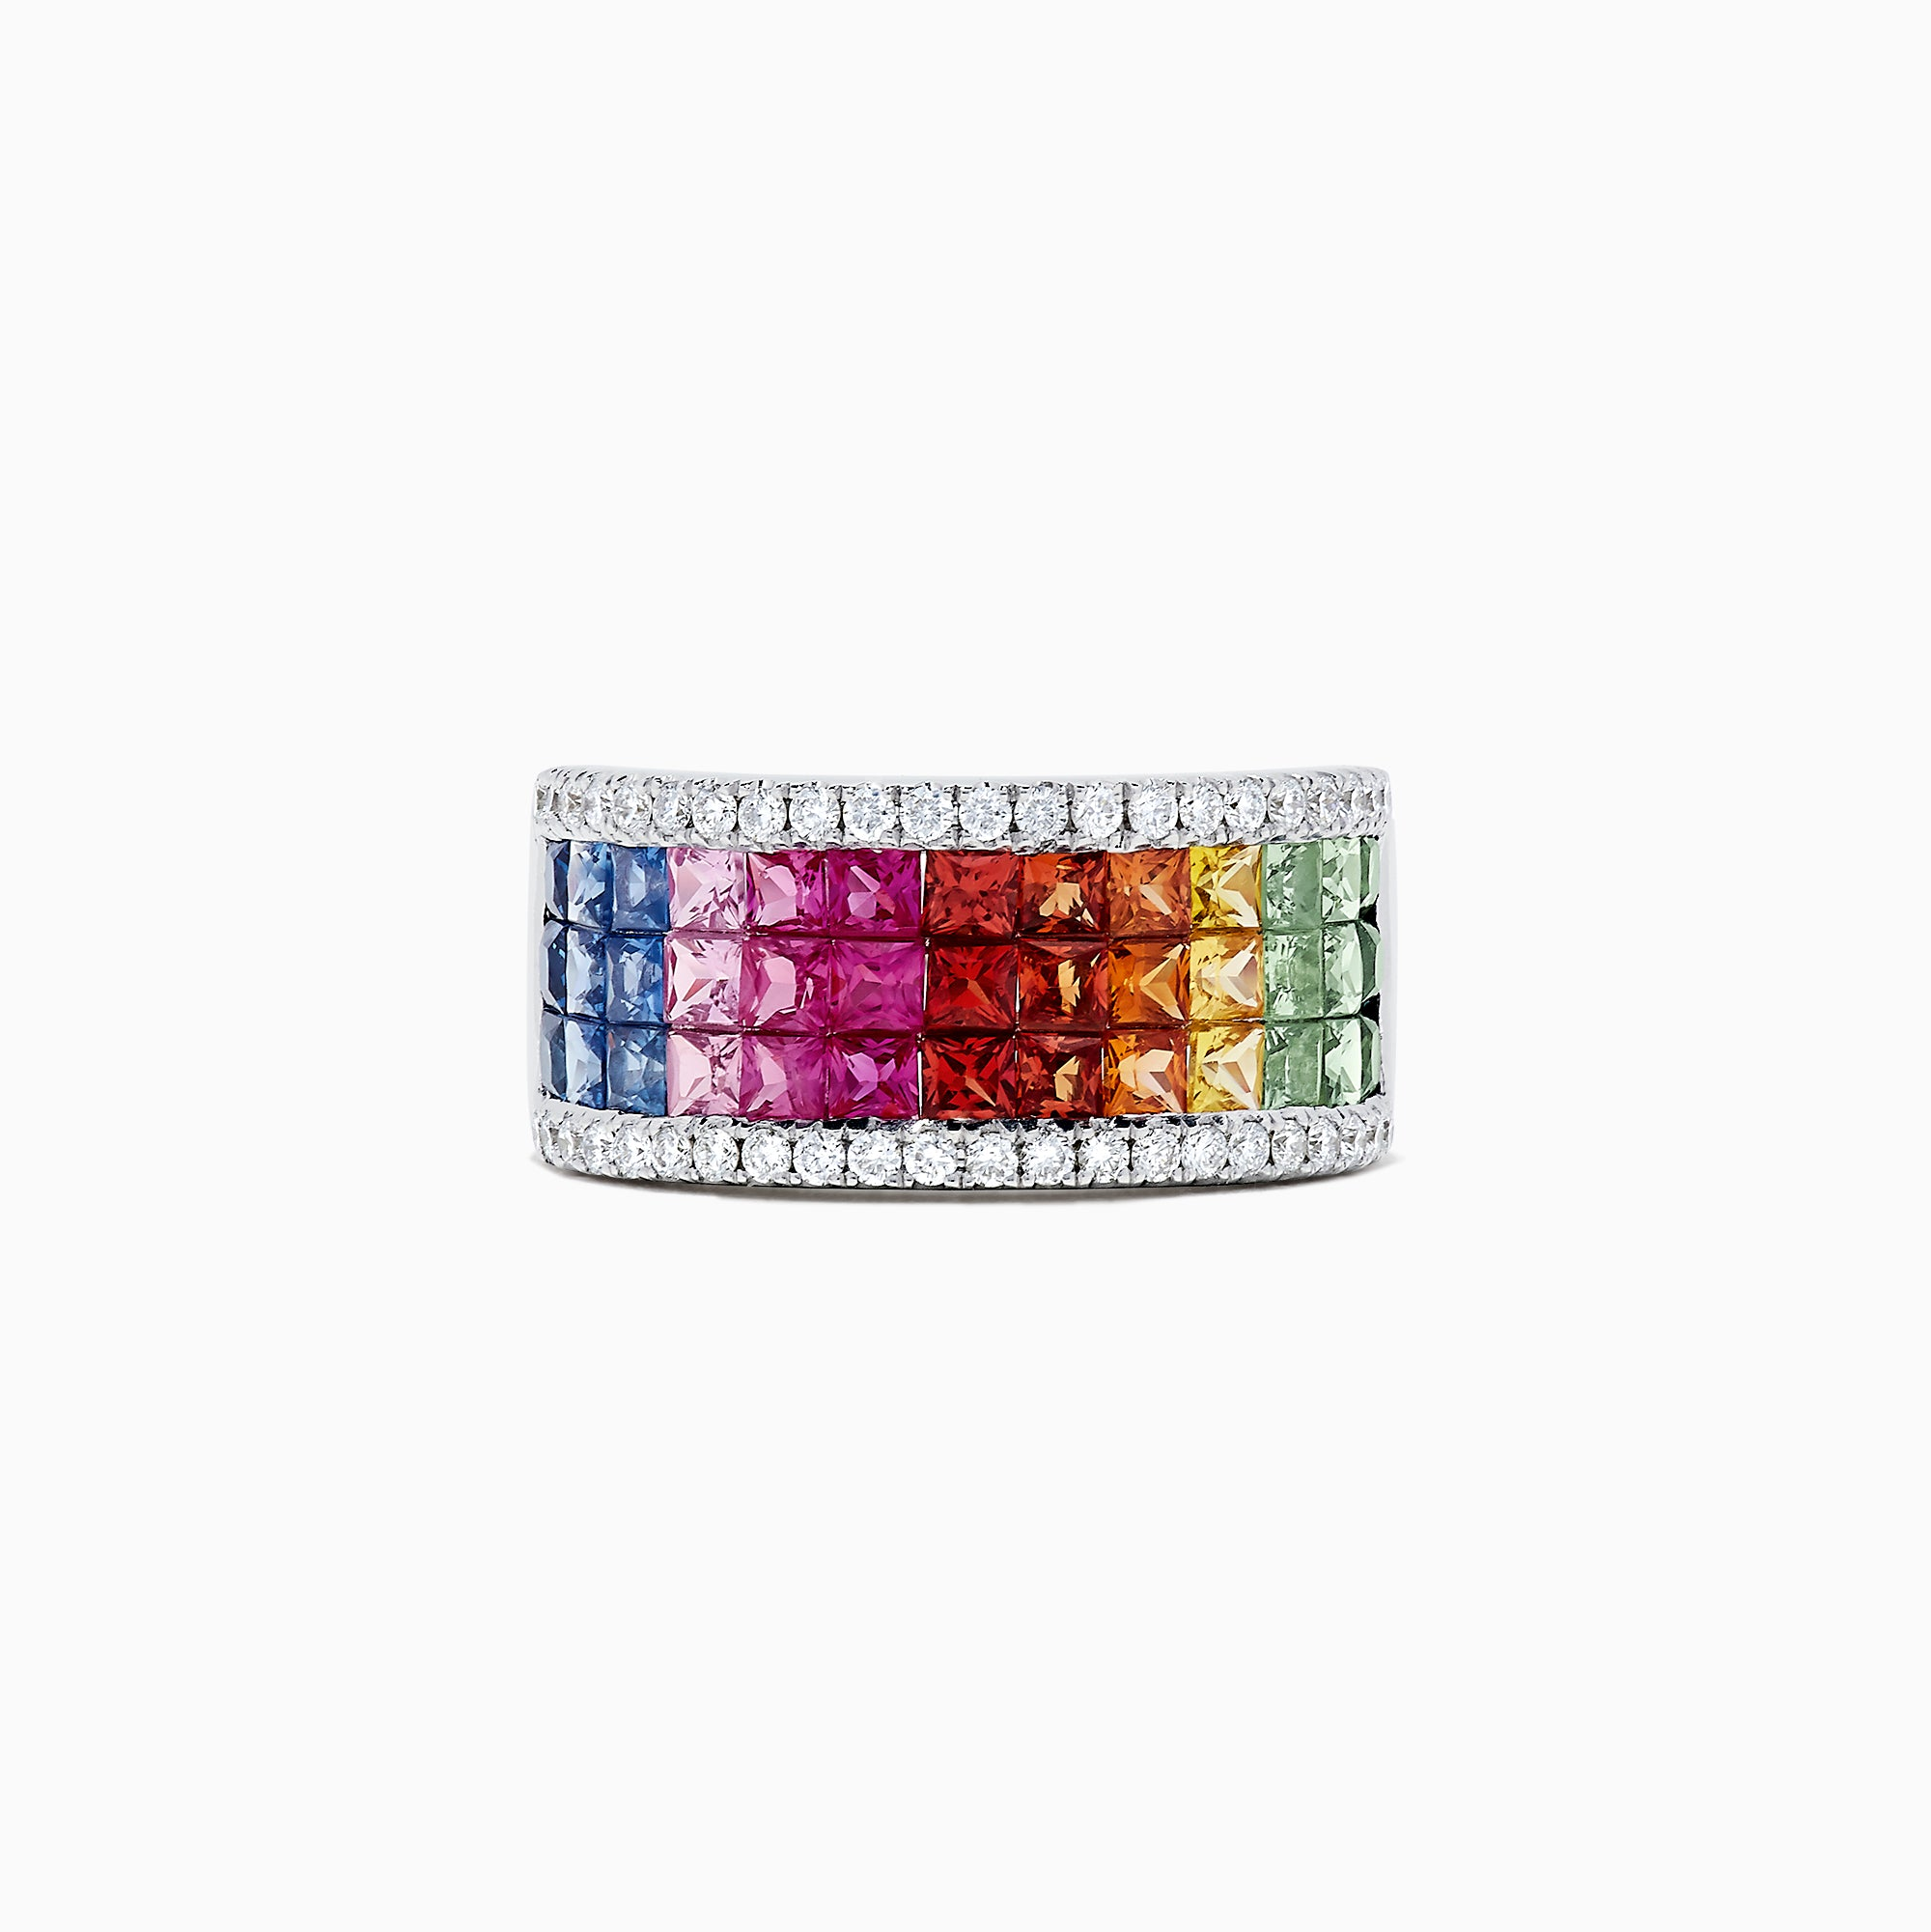 Effy Watercolors 14K White Gold Multi Sapphire and Diamond Ring, 3.33 TCW